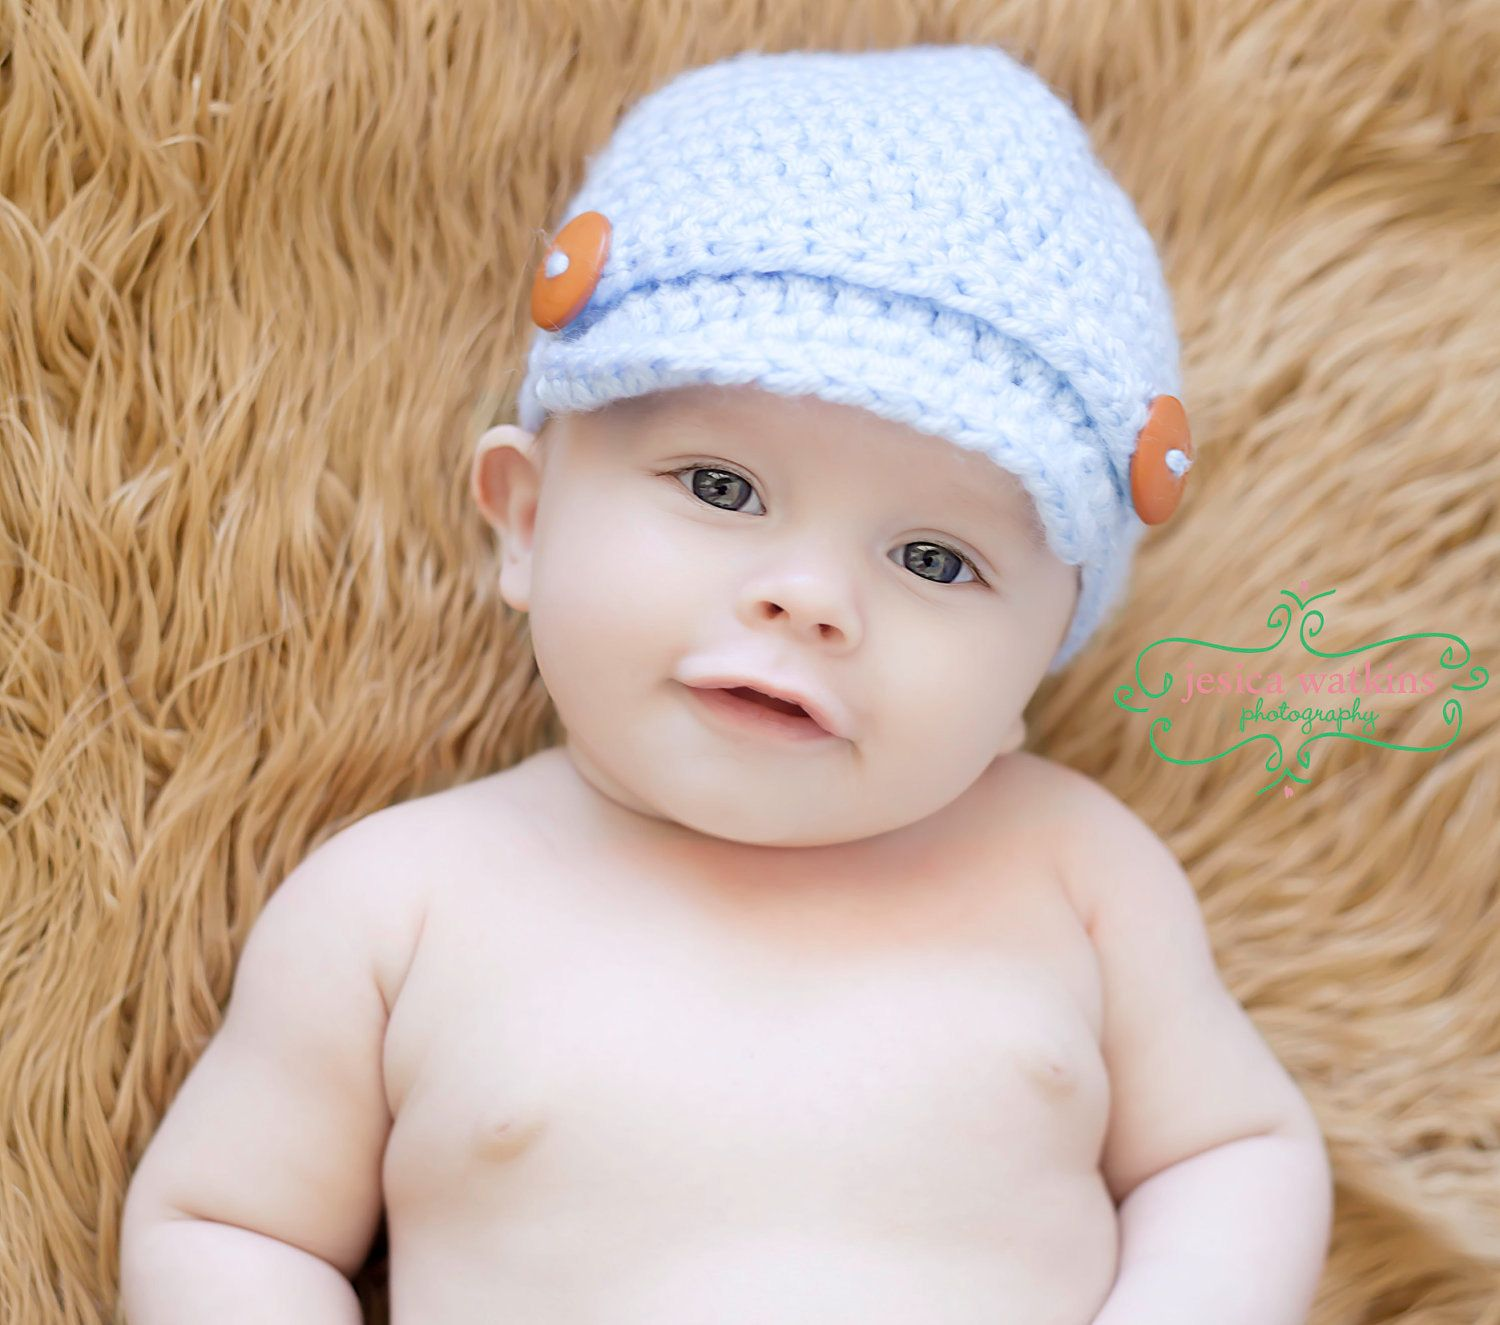 Free crochet hats for newborns crochet baby newsboy hat free crochet hats for newborns crochet baby newsboy hat newborn newsboy hat crochet bankloansurffo Choice Image